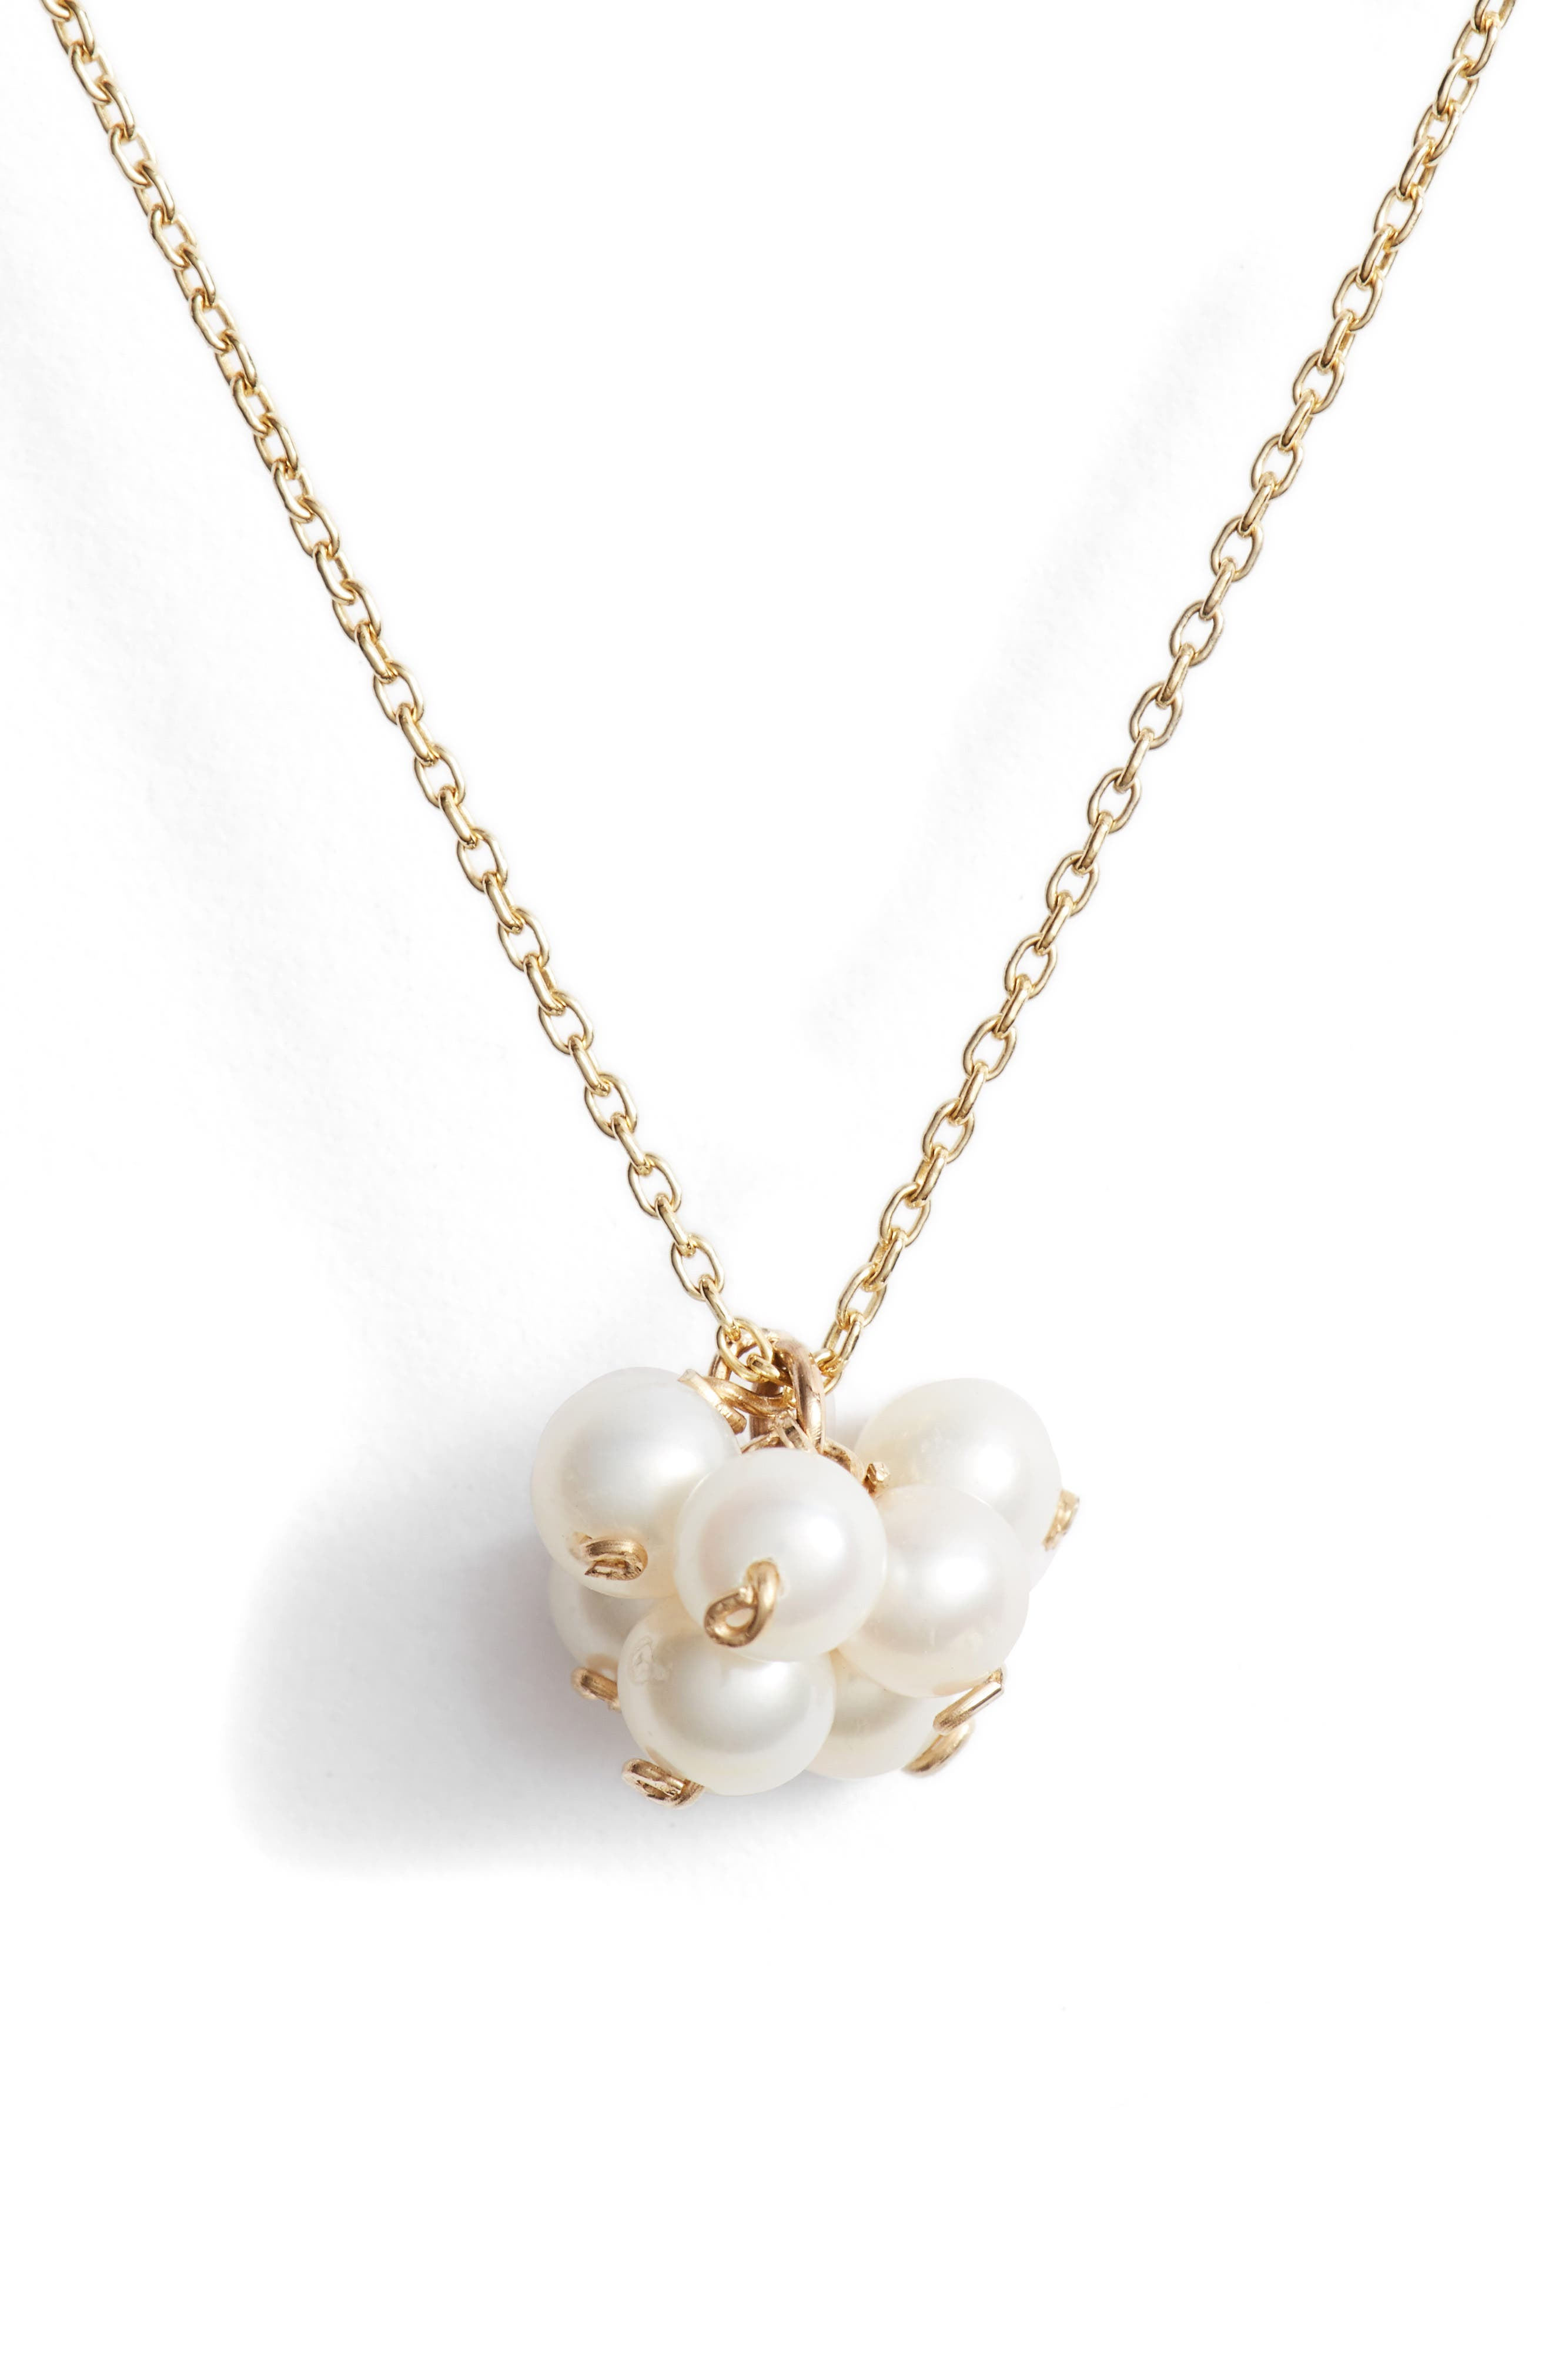 Baby Pearl Cluster Pendant Necklace,                             Main thumbnail 1, color,                             Yellow Gold/ White Pearl